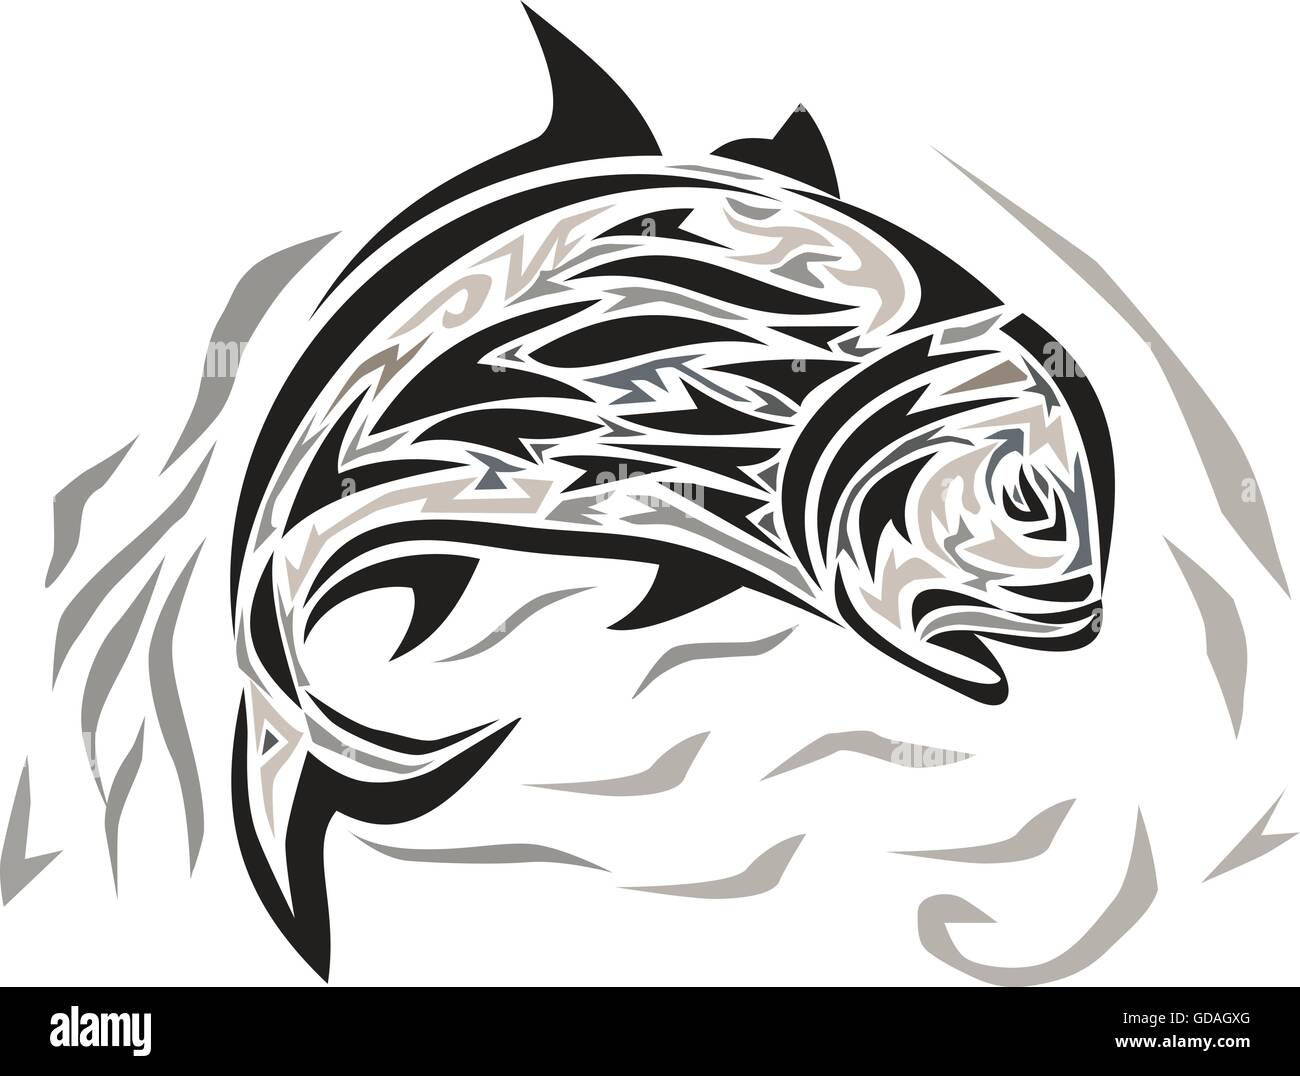 Tribal art style illustration of a giant trevally, Caranx ignobilis also known as giant kingfish, lowly trevally, - Stock Image